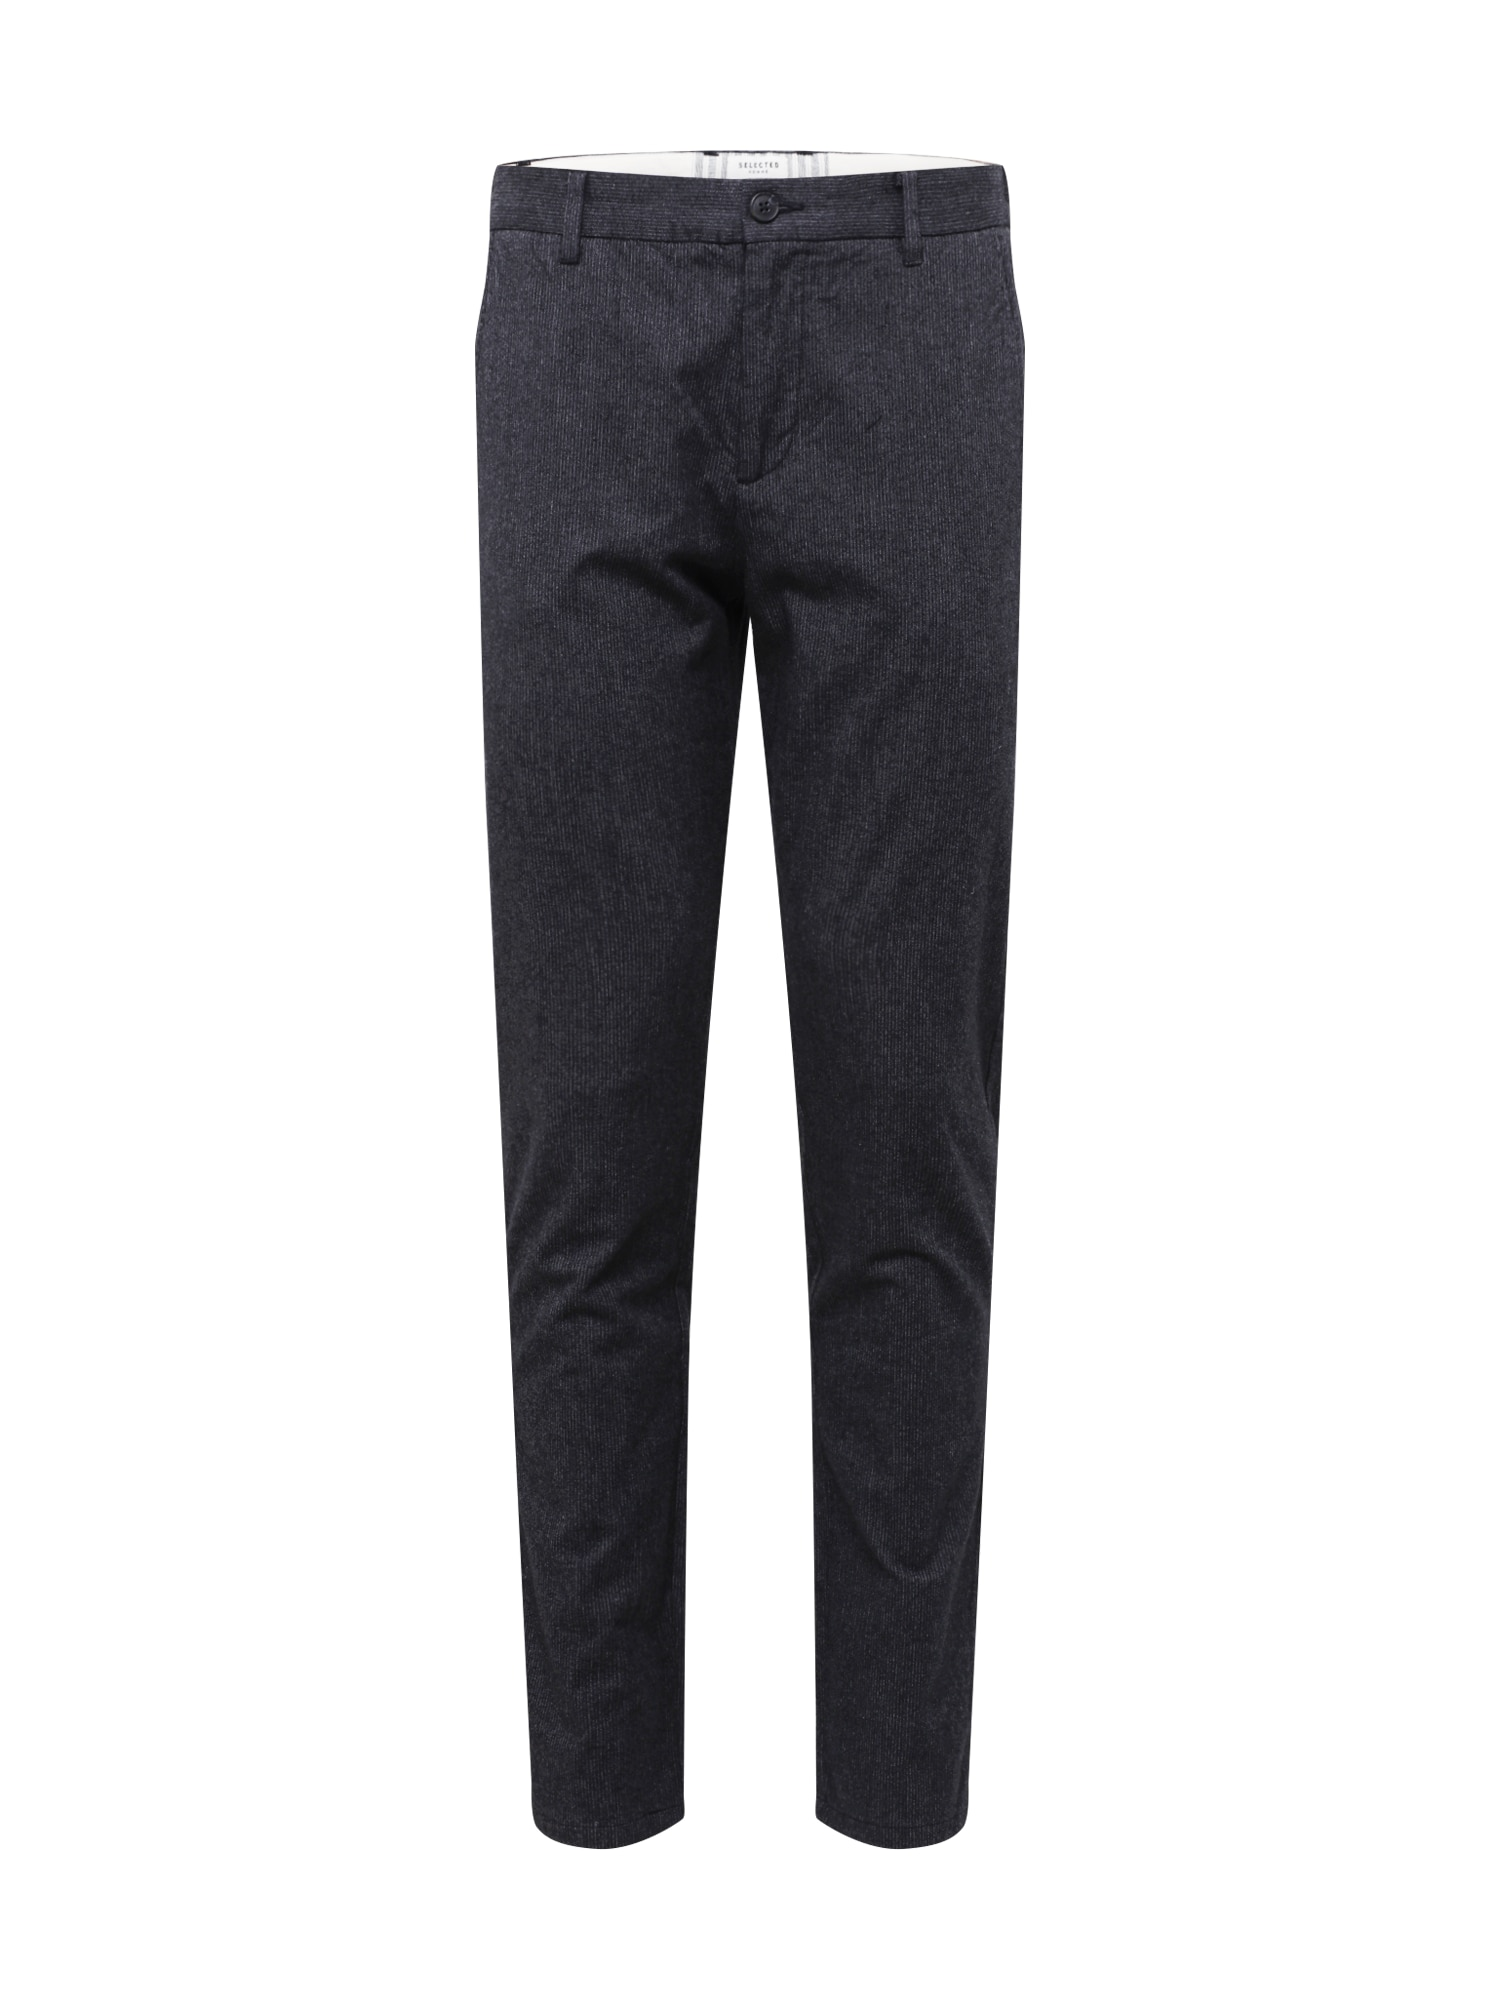 SELECTED HOMME Chino nohavice  sivá